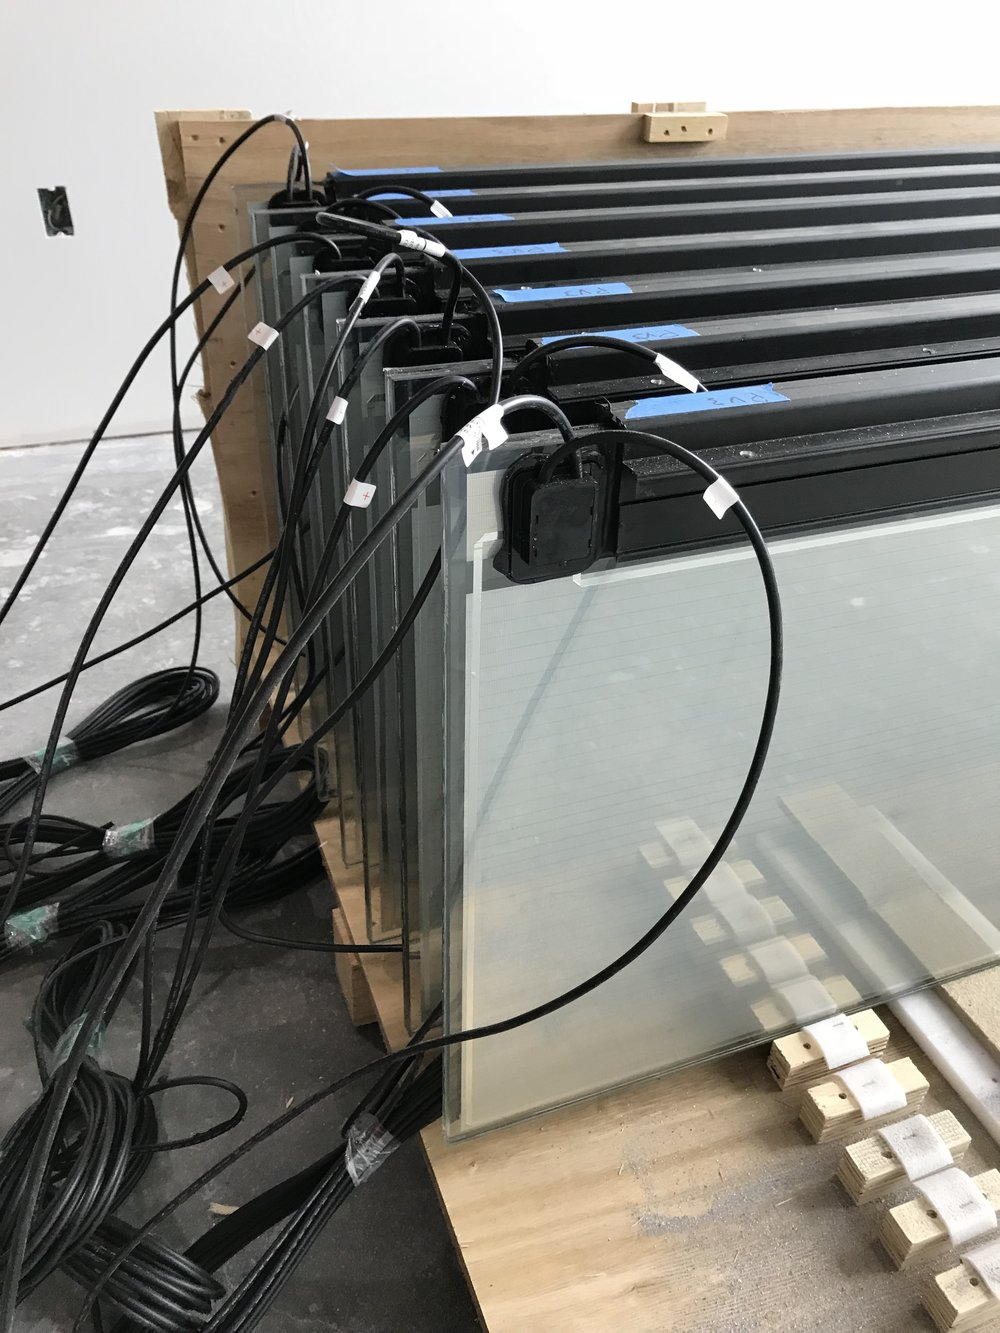 Solar glass fins with electrical connections stored before installation